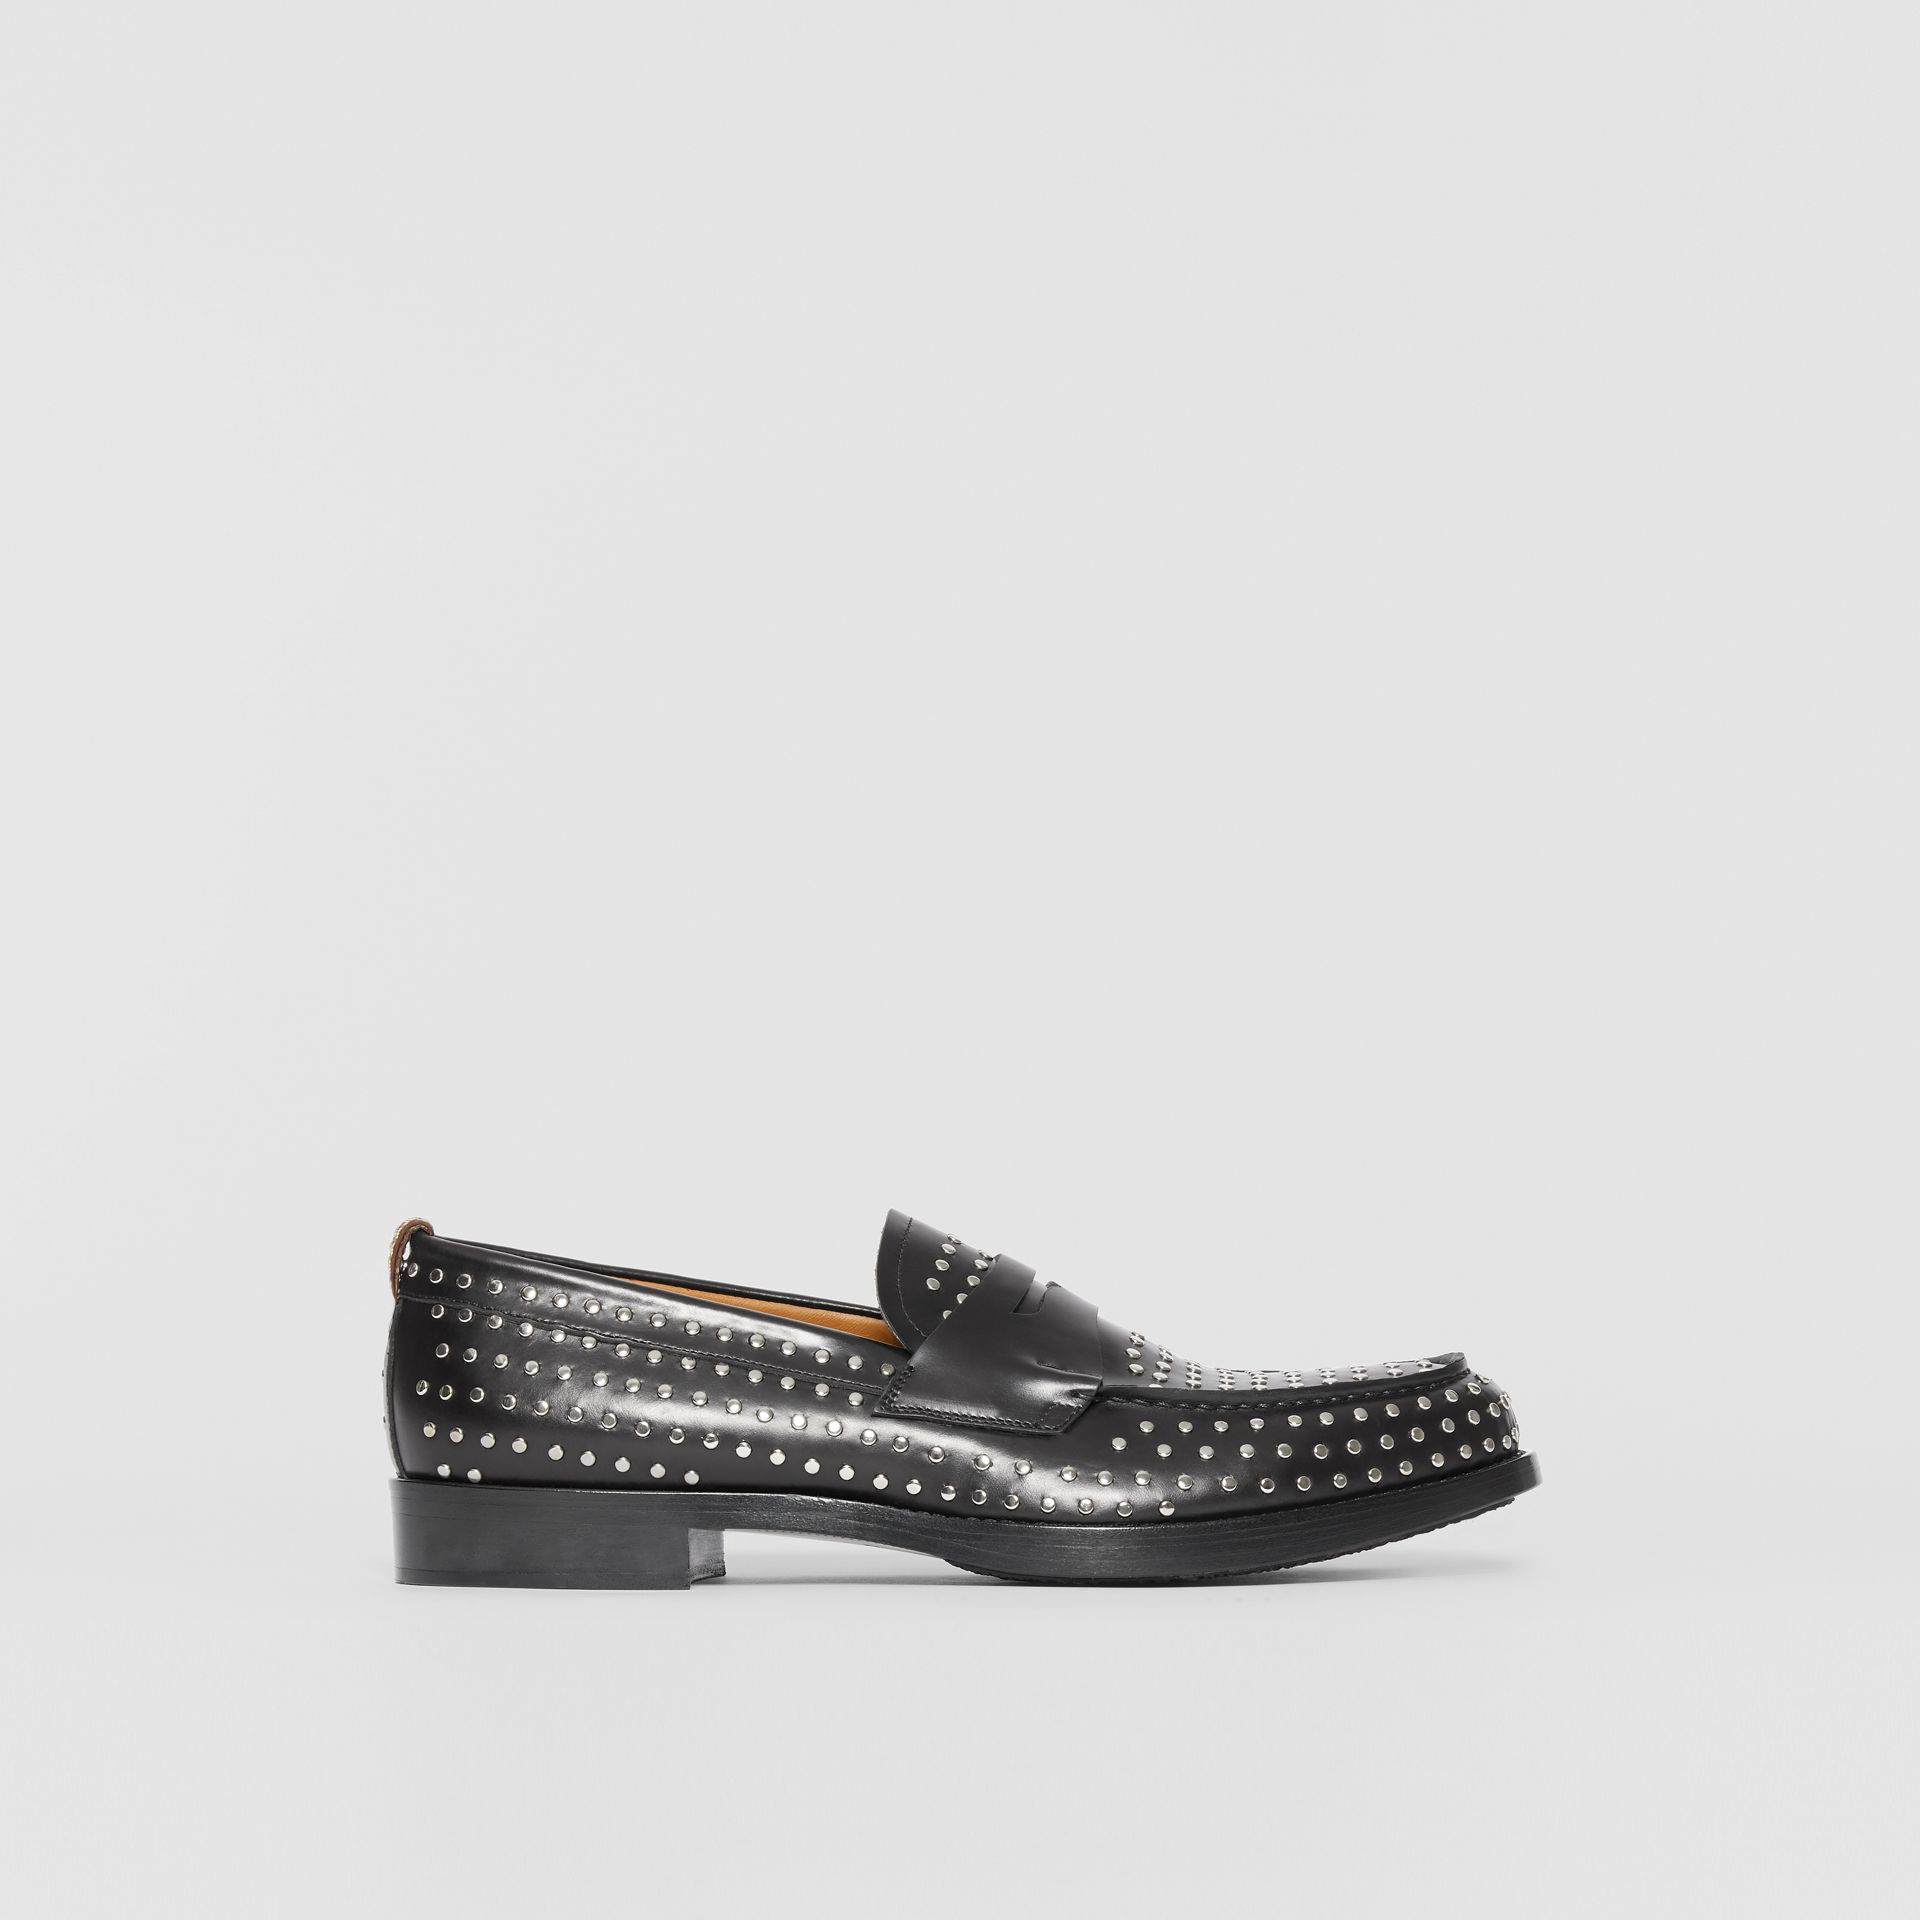 D-ring Detail Studded Leather Loafers in Black - Men | Burberry United Kingdom - gallery image 5